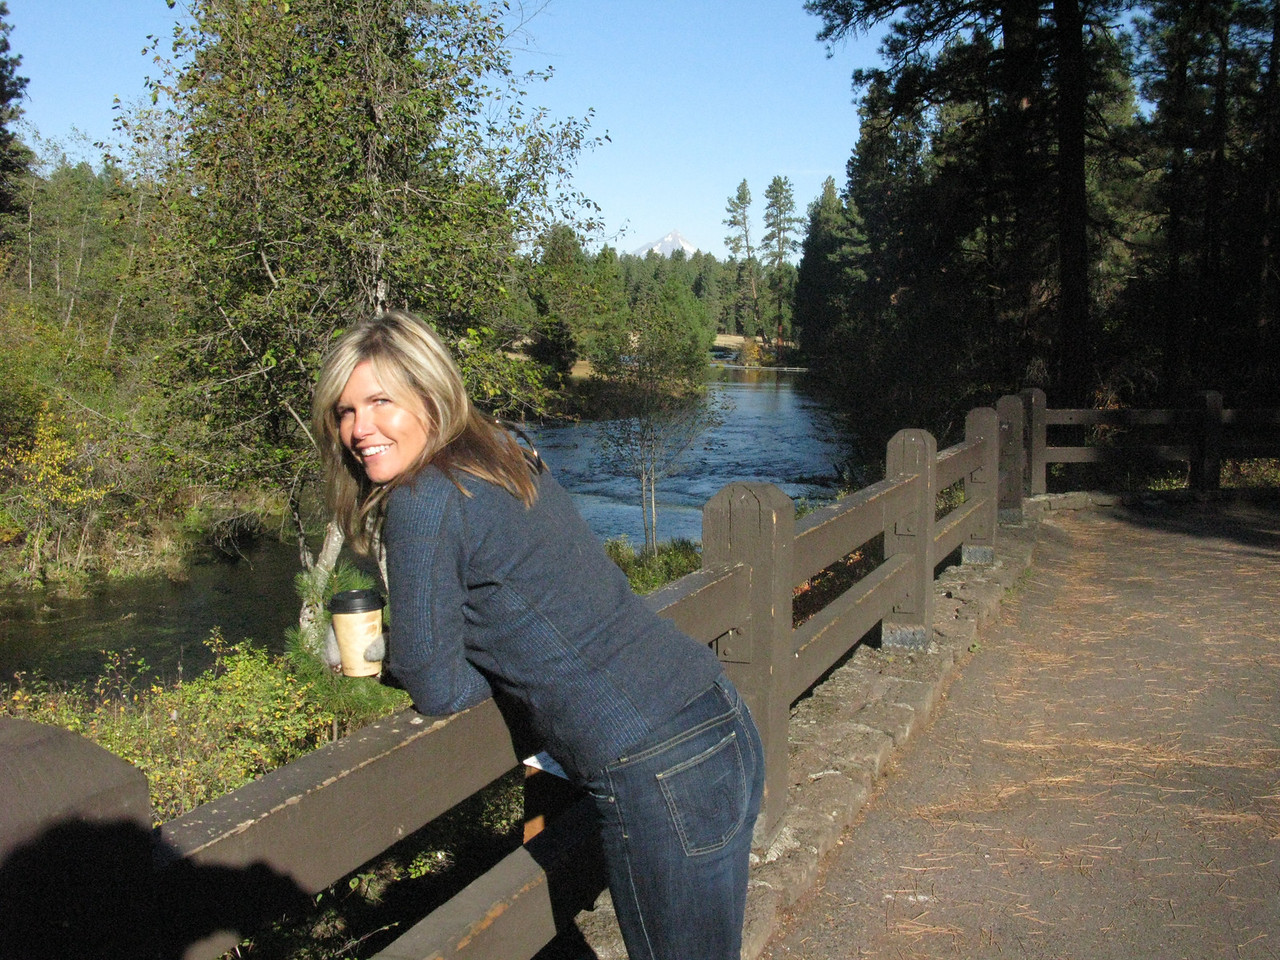 coffee at the head of the metolious river....nice.